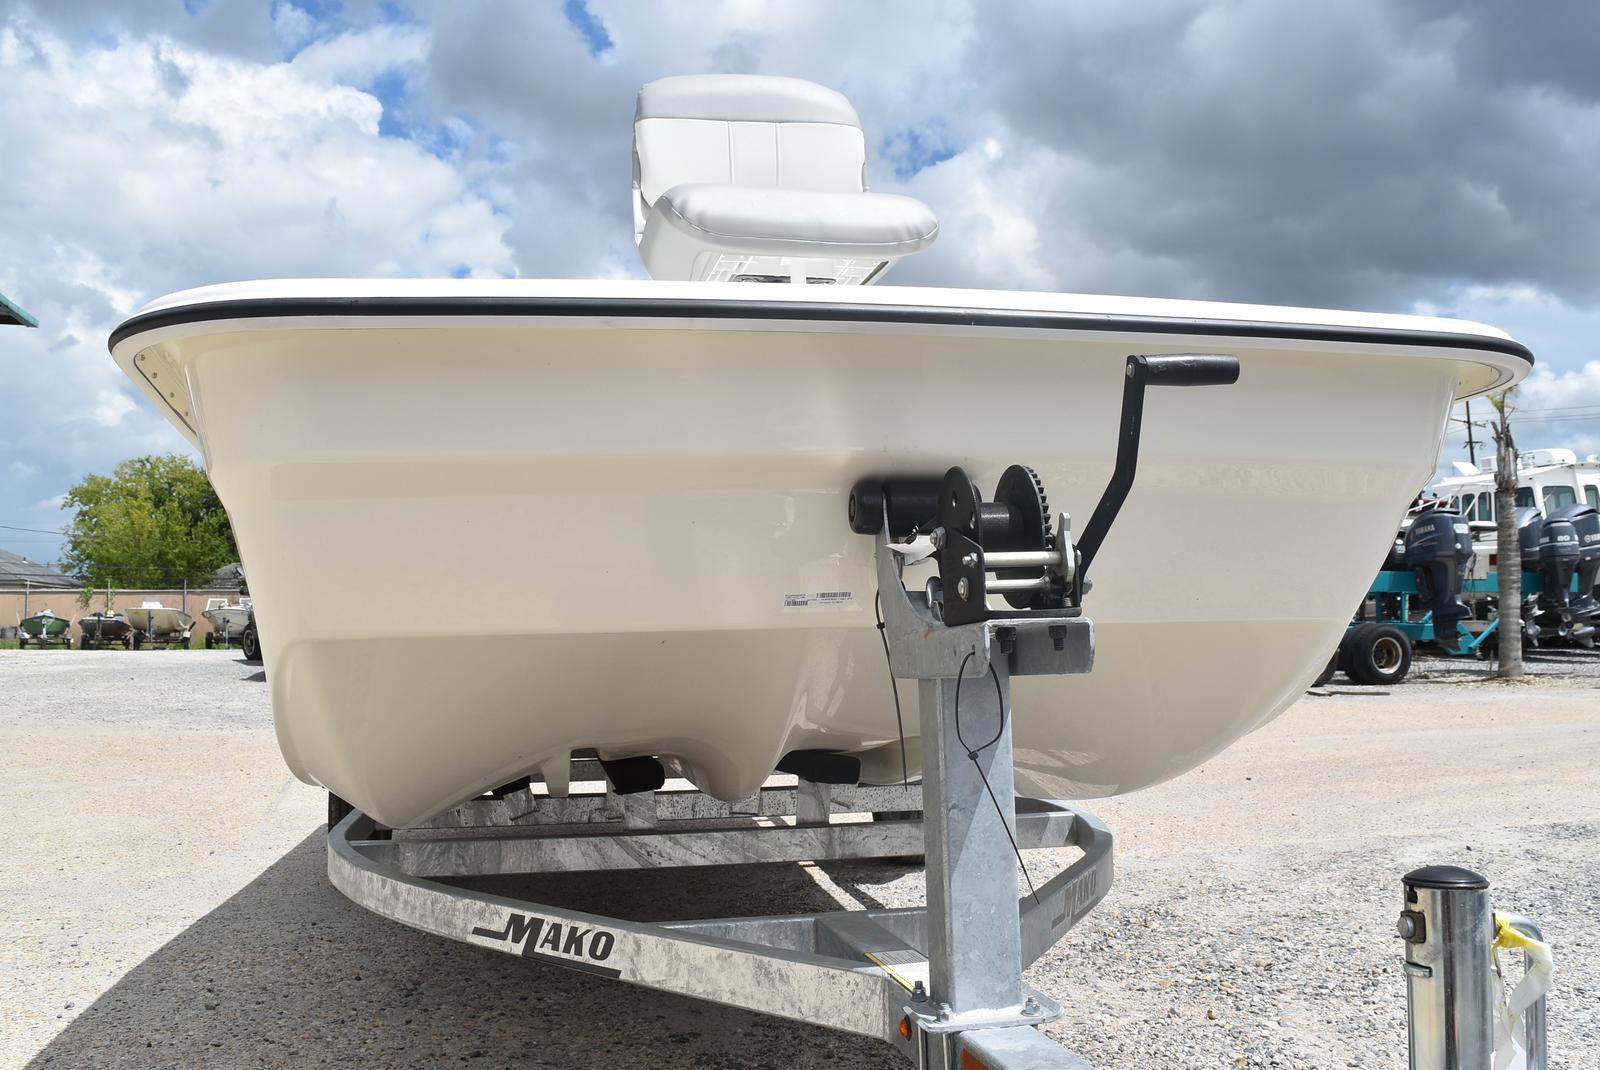 2020 Mako boat for sale, model of the boat is Pro Skiff 17, 75 ELPT & Image # 351 of 702